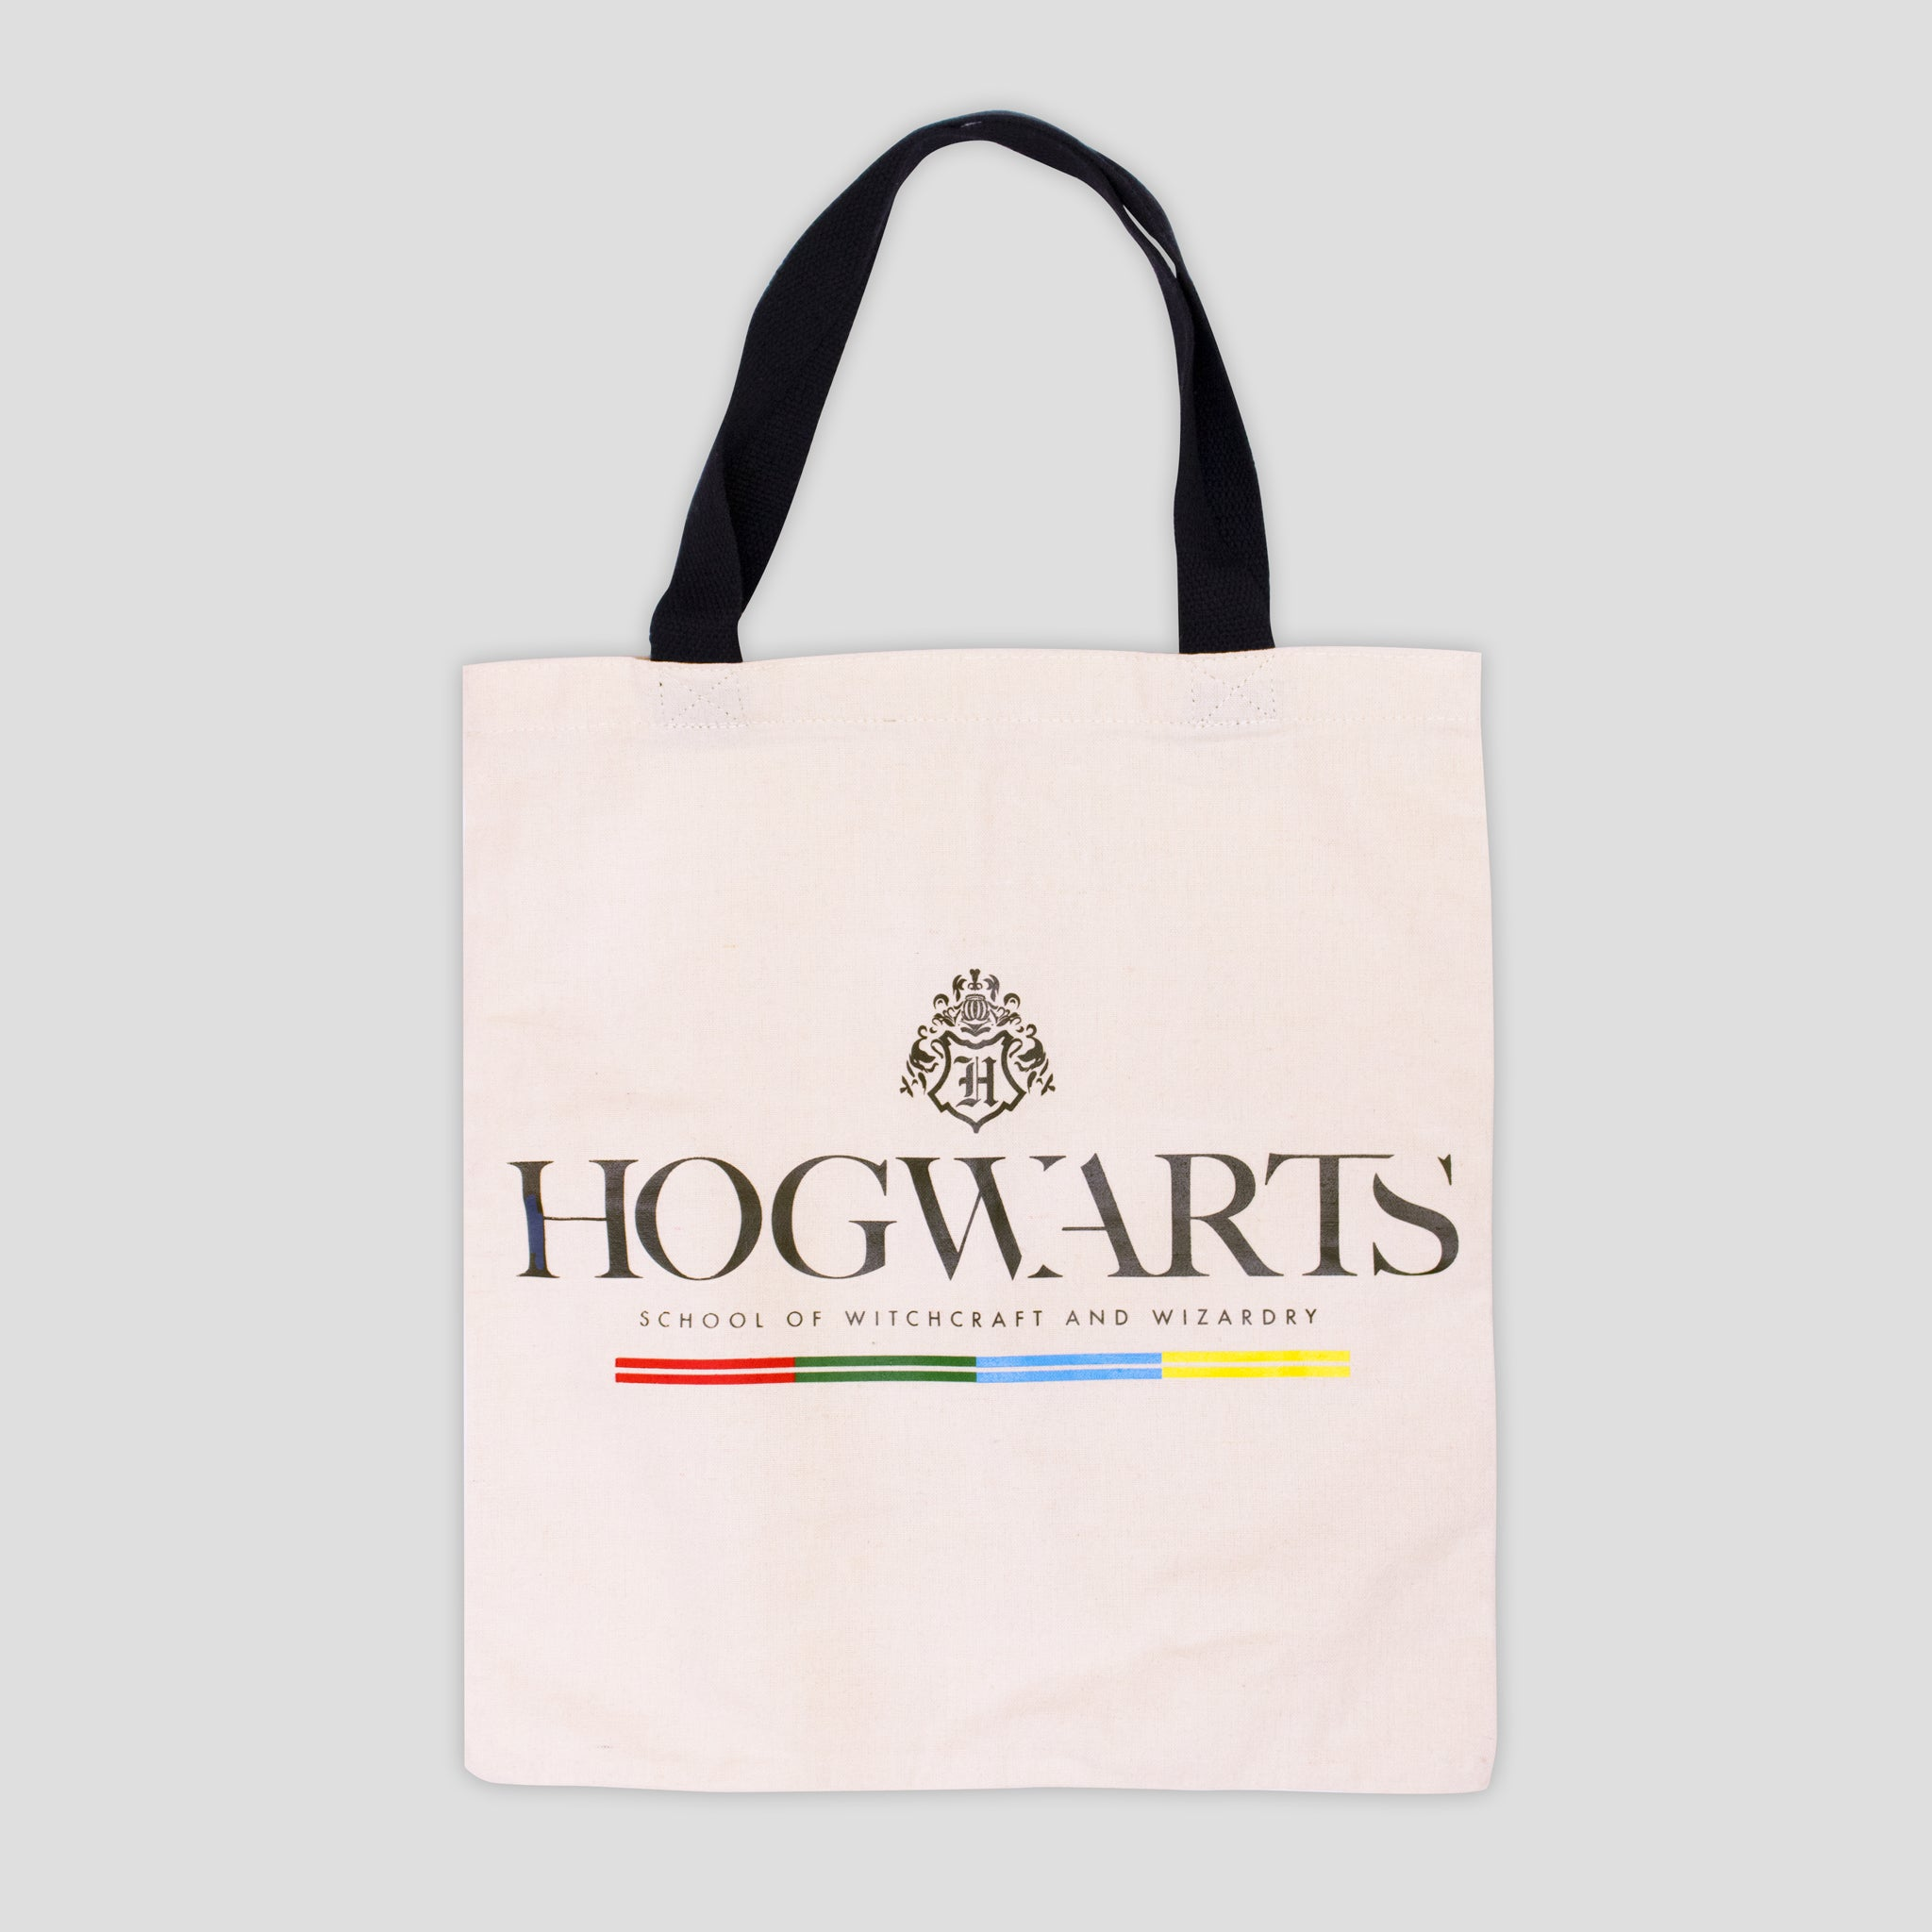 harry potter jk rowling book-a-million retail box wizarding world collectors box collectible exclusives hogwarts culturefly tote bag reusable